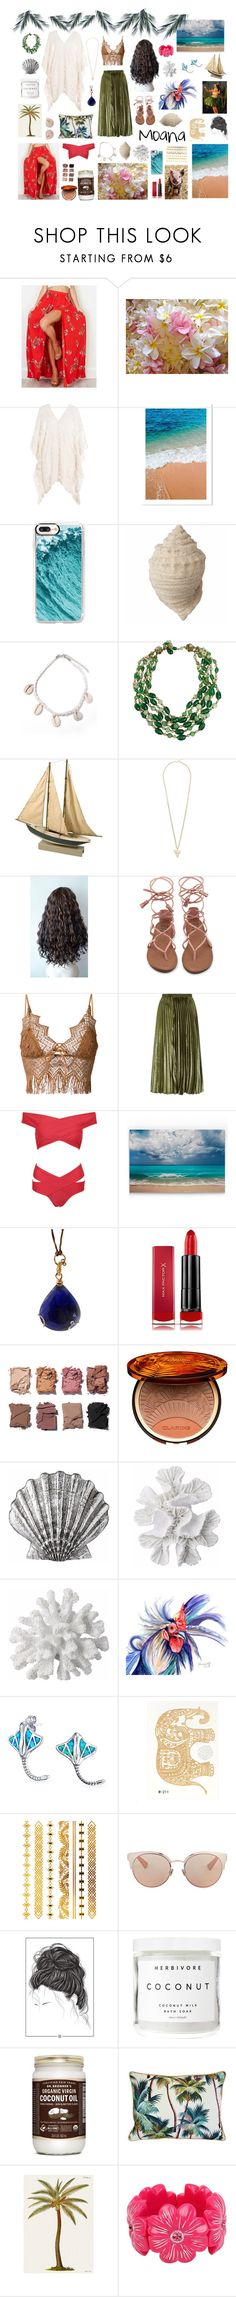 """Disney- Moana"" by darkpastel ❤ liked on Polyvore featuring OneSelf, Eberjey, Casetify, Miriam Haskell, Givenchy, Ermanno Scervino, Whistles, WithChic, Federica Rettore and Max Factor"